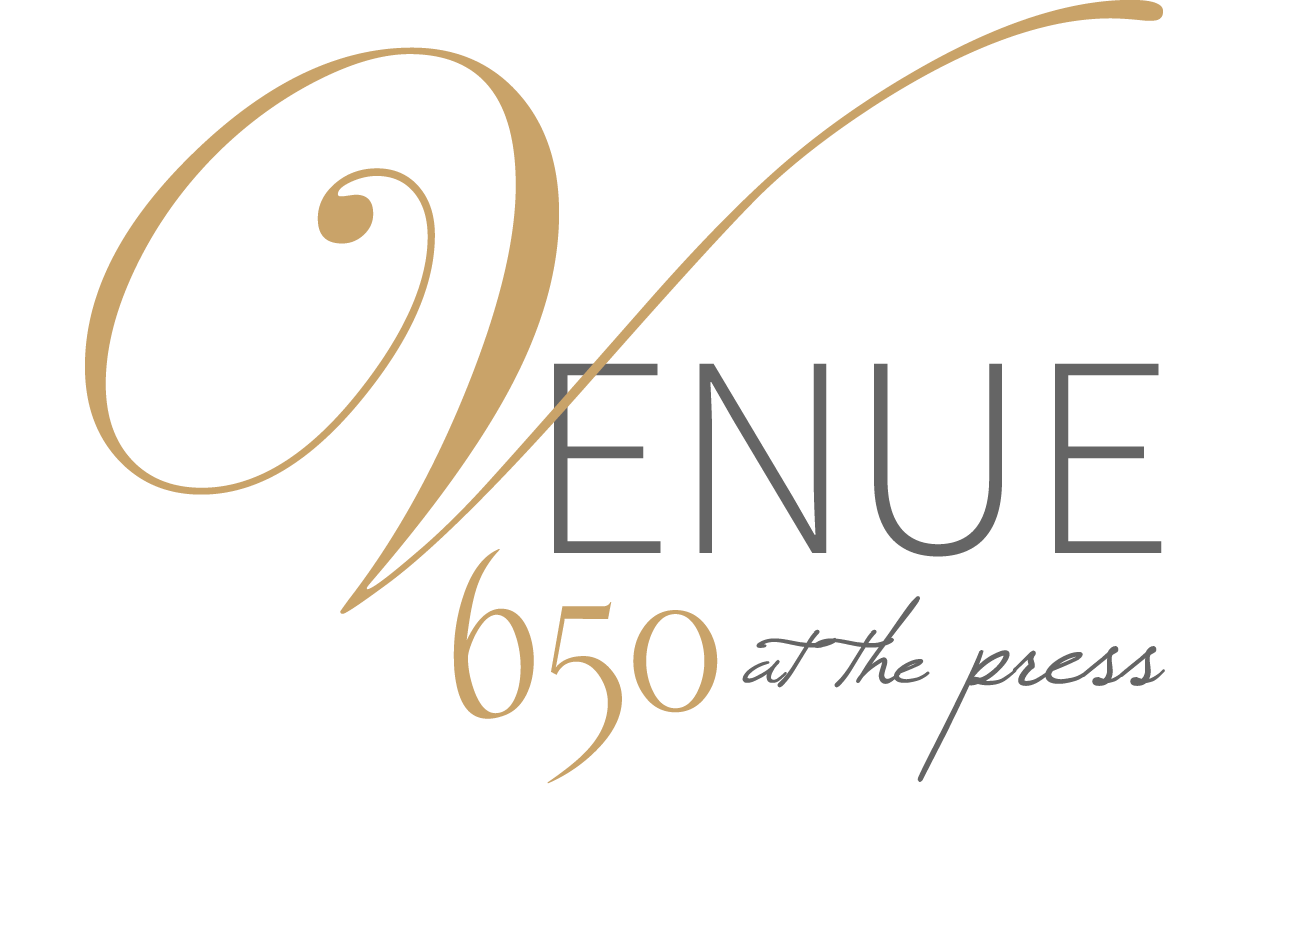 Bronze (Hole) Sponsor - Venue 650 - Logo